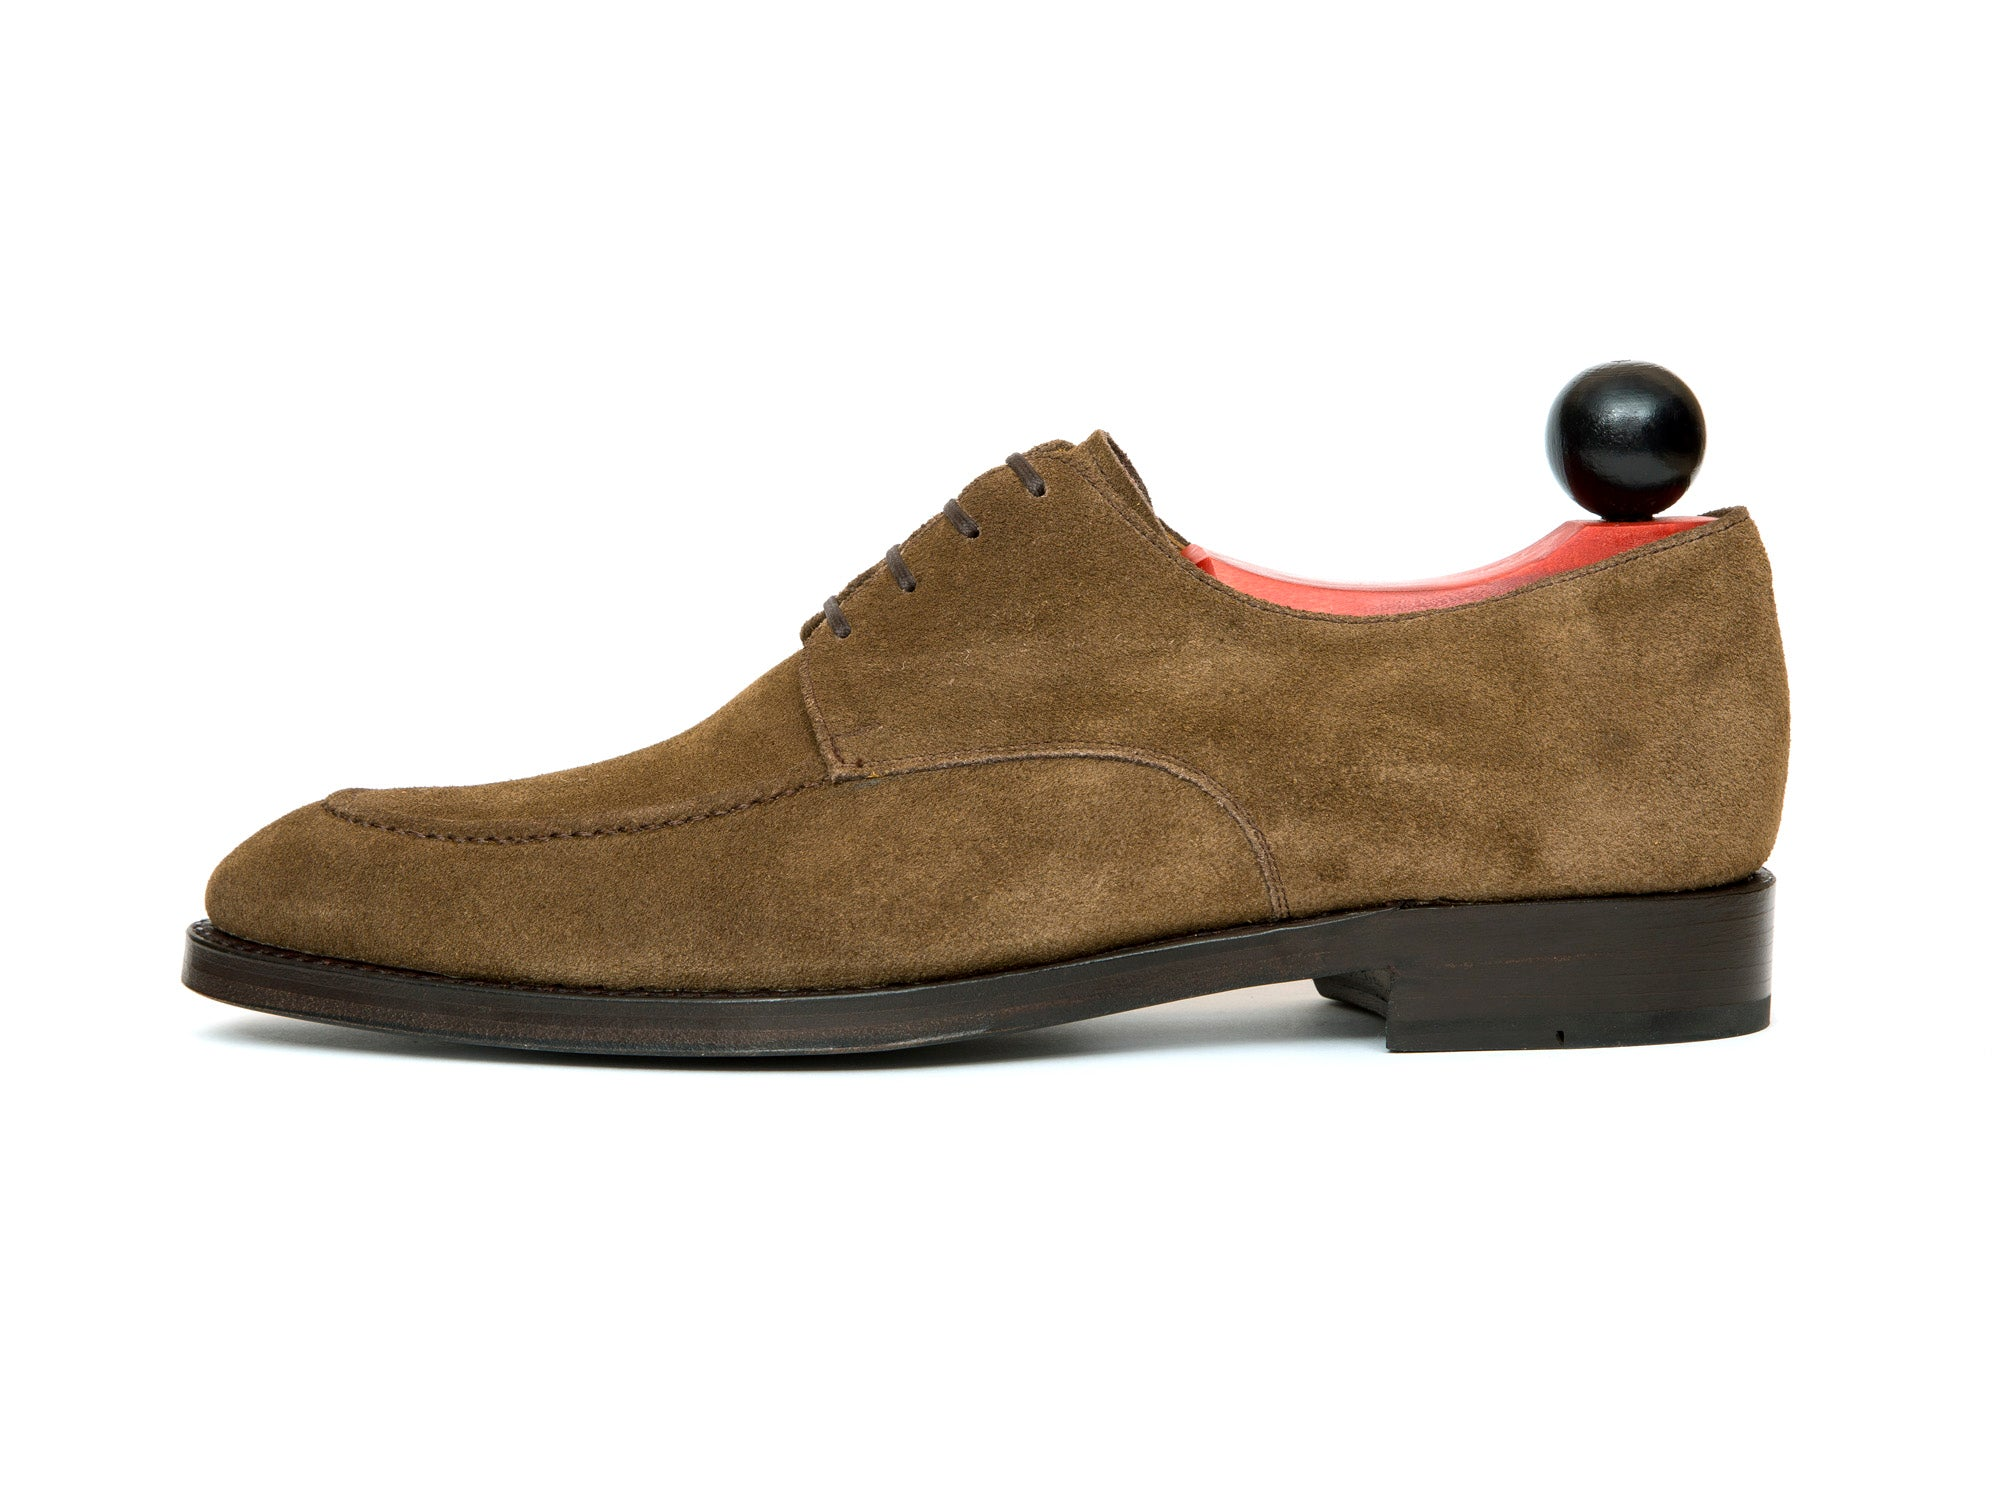 Lynwood - MTO - Taupe Suede - Double Leather Sole